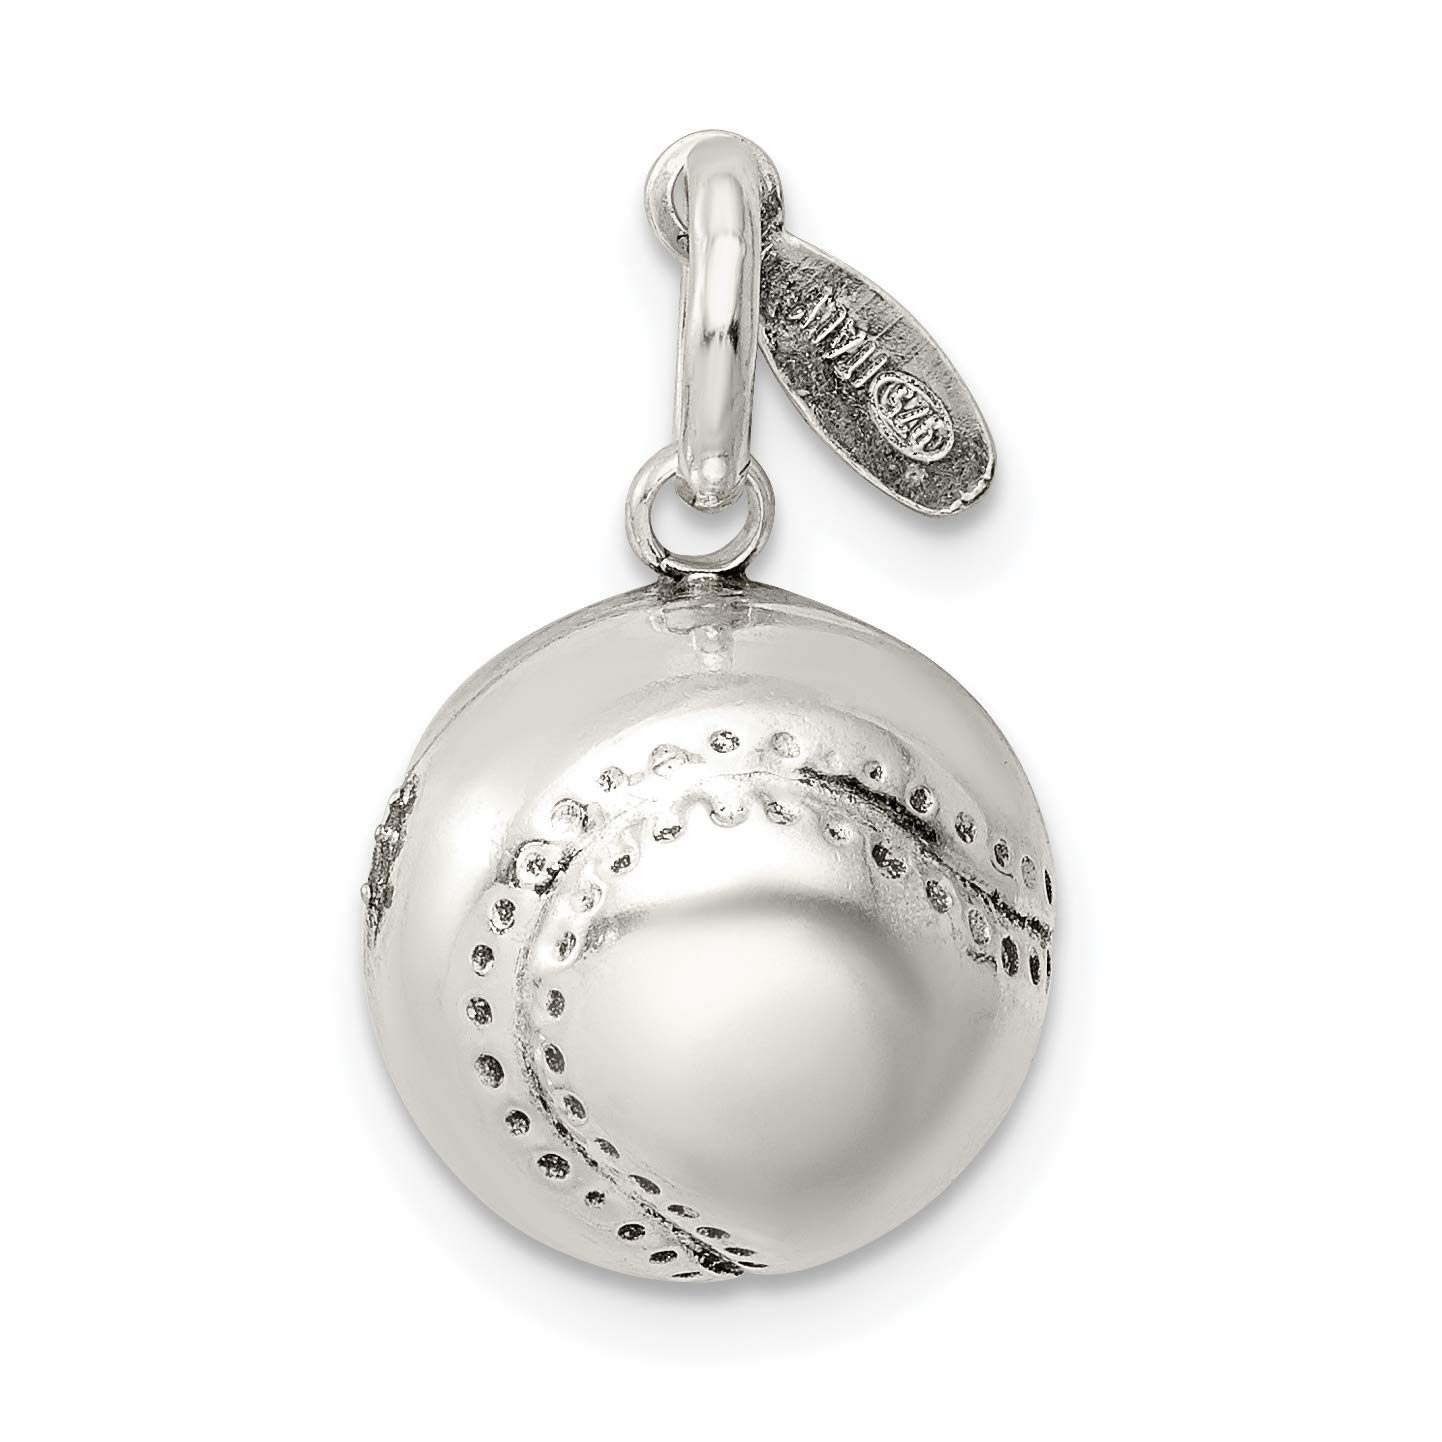 Baseball Charm In Polished 925 Sterling Silver 15x13mm